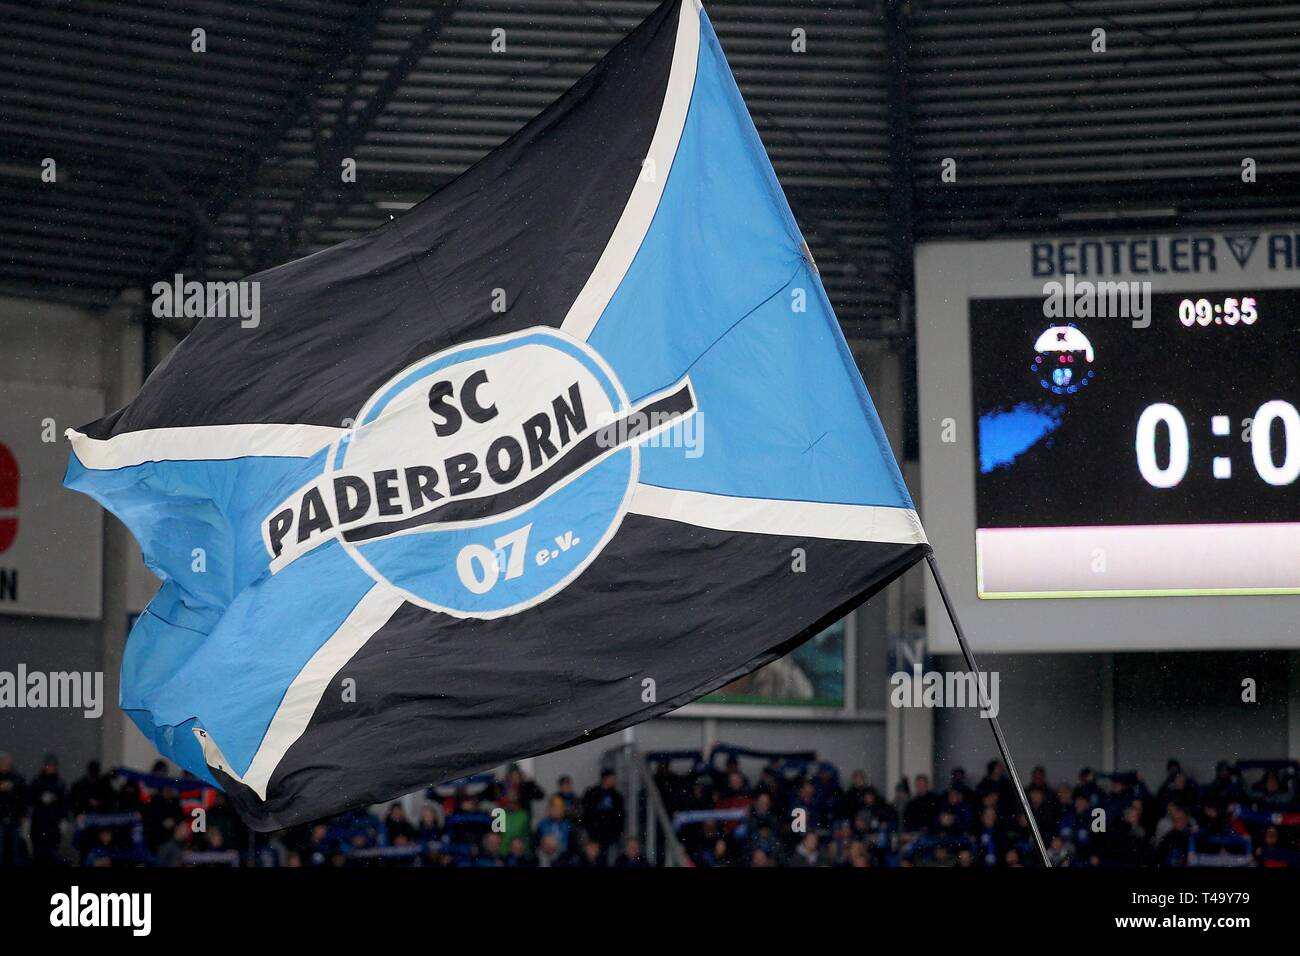 firo: 13.04.2019, football, 2.Bundesliga, season 2018/2019, SC Paderborn - MSV Duisburg, flag, depositor, feature, general, | usage worldwide - Stock Image